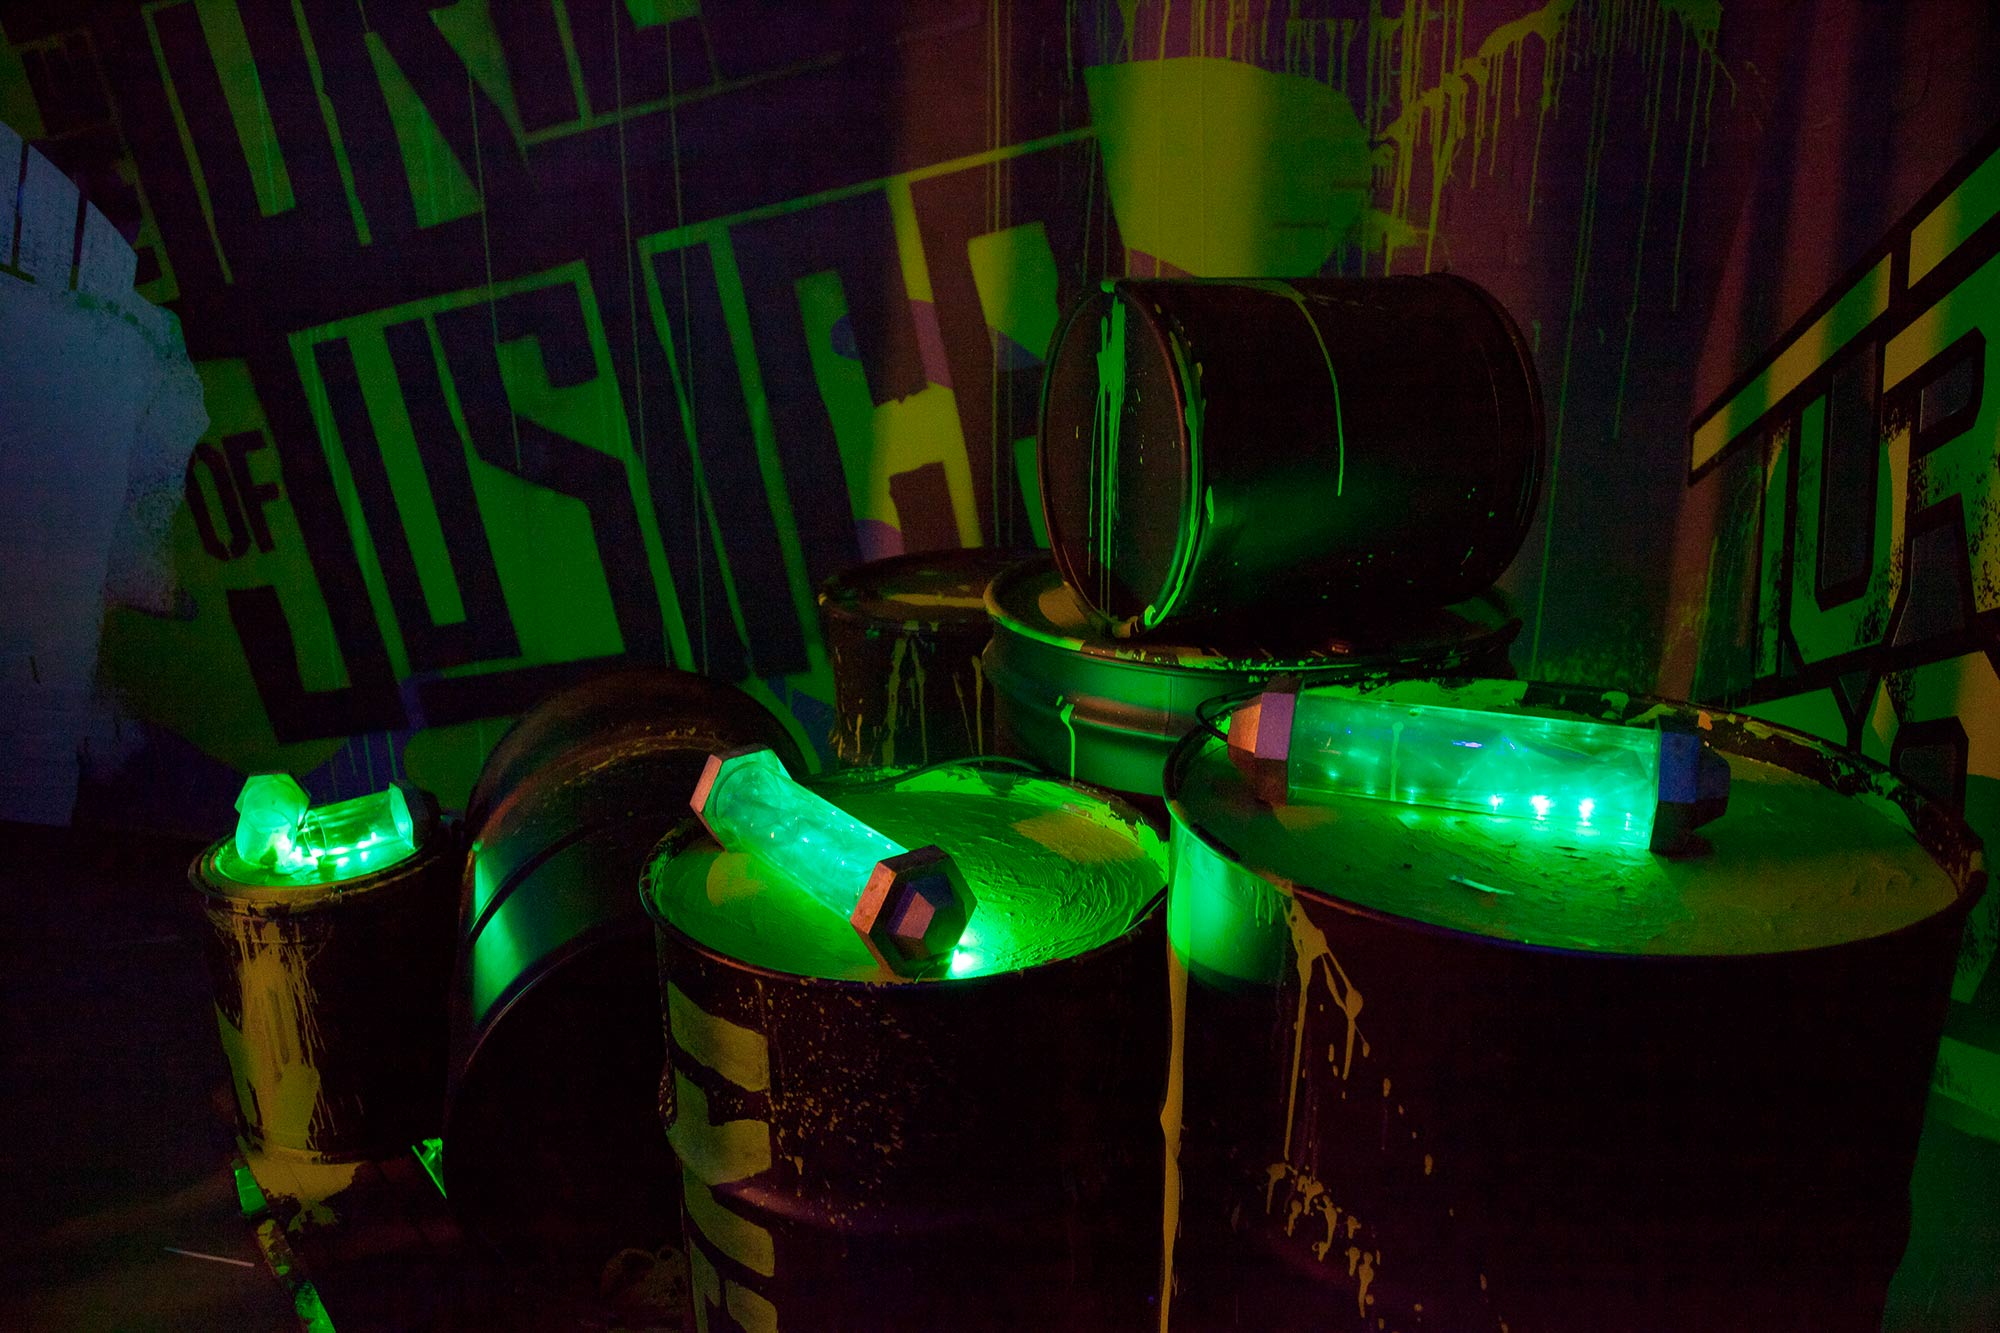 Glow in the dark sludge was only one of the iconic elements in Nickelodeon's Teenage Mutant Ninja Turtle hallway takeover at Comic Con.